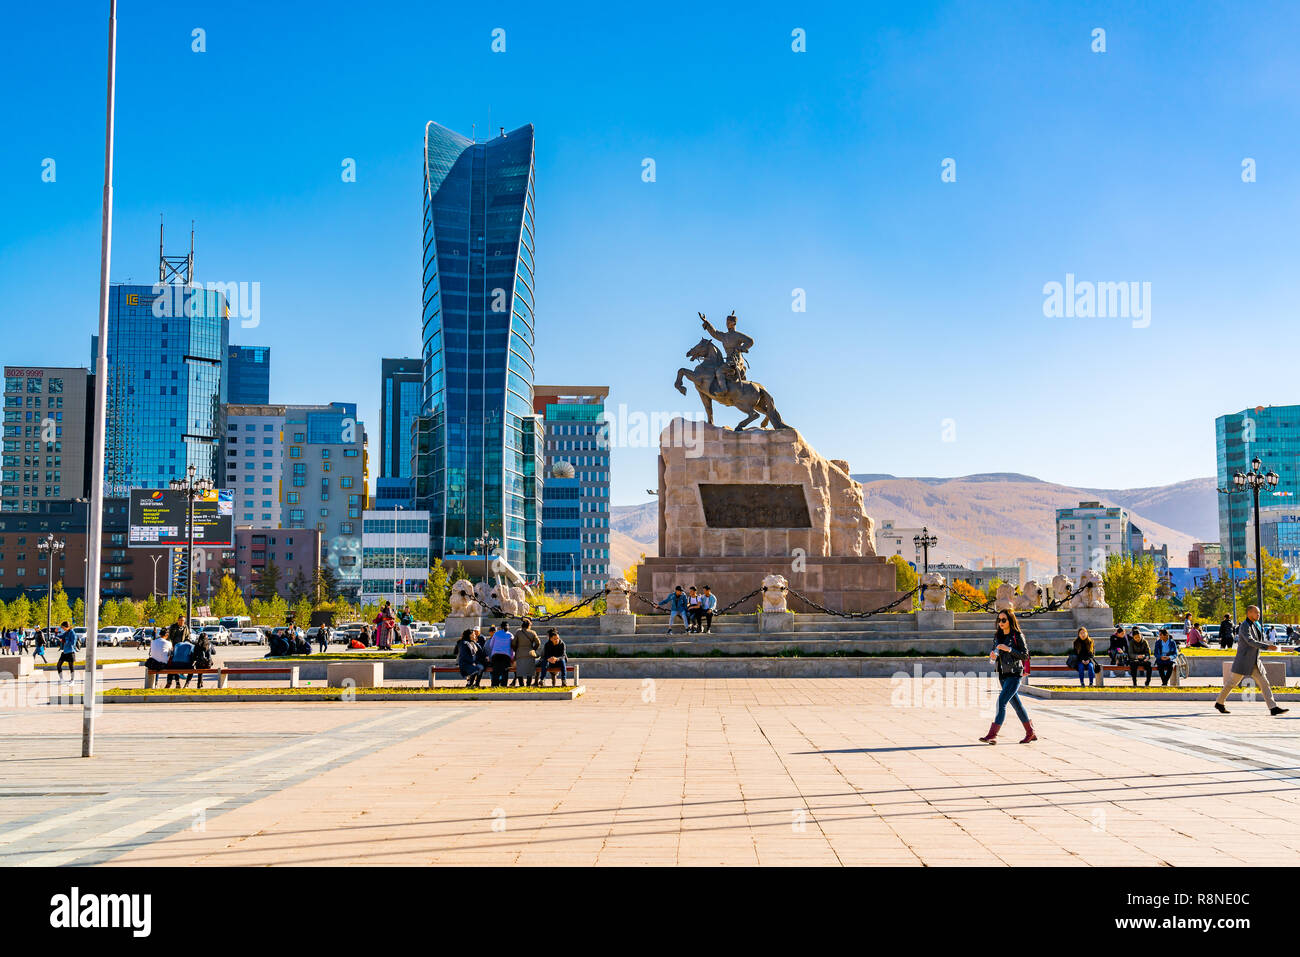 ULAANBAATAR, MONGOLIA - OCTOBER 3, 2018 : Sukhbaatar Square or Genghis Khan Square with the Statue of Mongolian revolutionary hero Sukhbaatar and the  Stock Photo